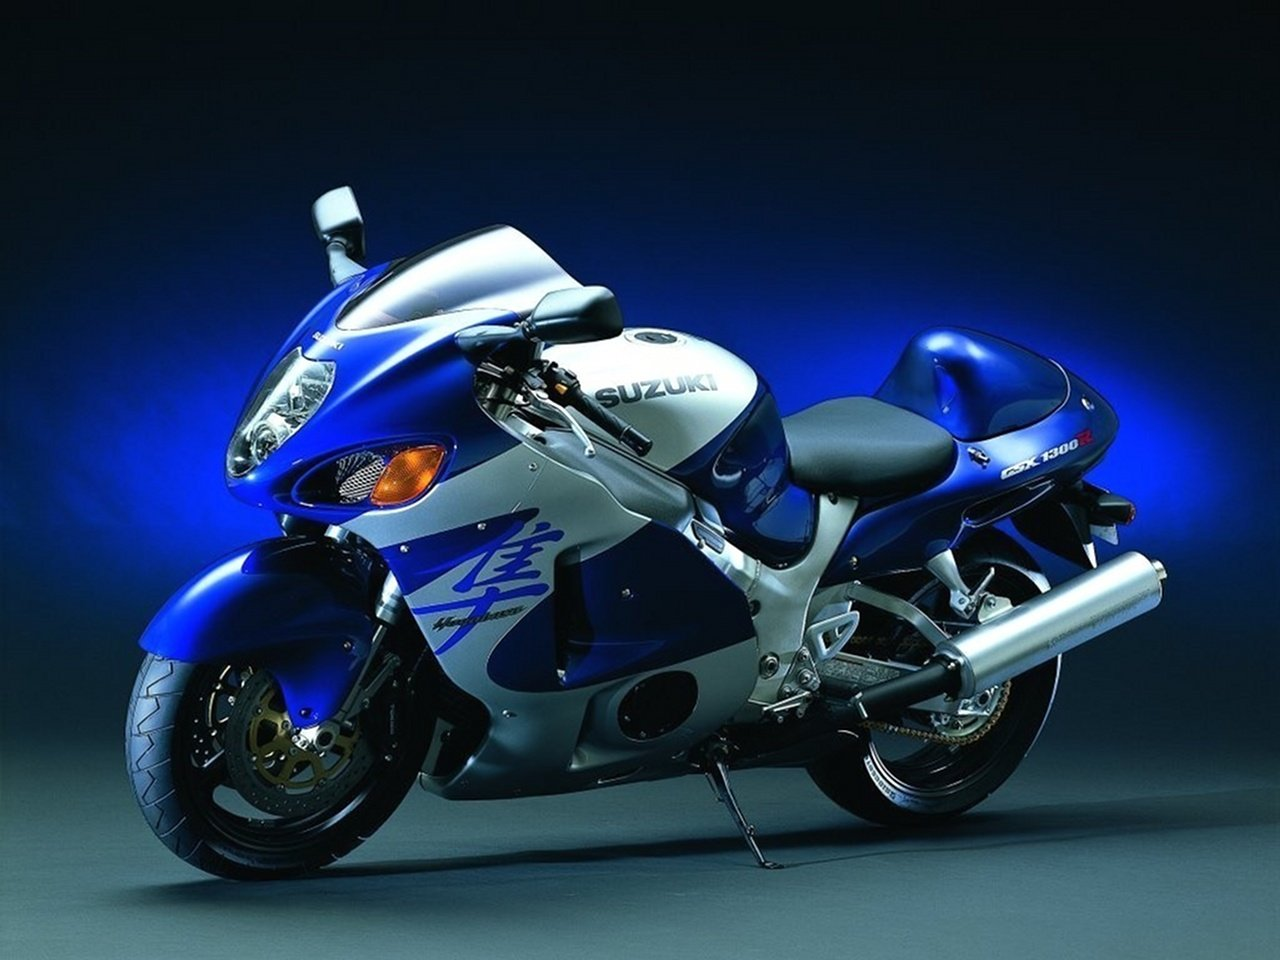 suzuki gsx r 1300 hayabusa 2000 datasheet service manual and datasheet for suzuki motorcycles. Black Bedroom Furniture Sets. Home Design Ideas